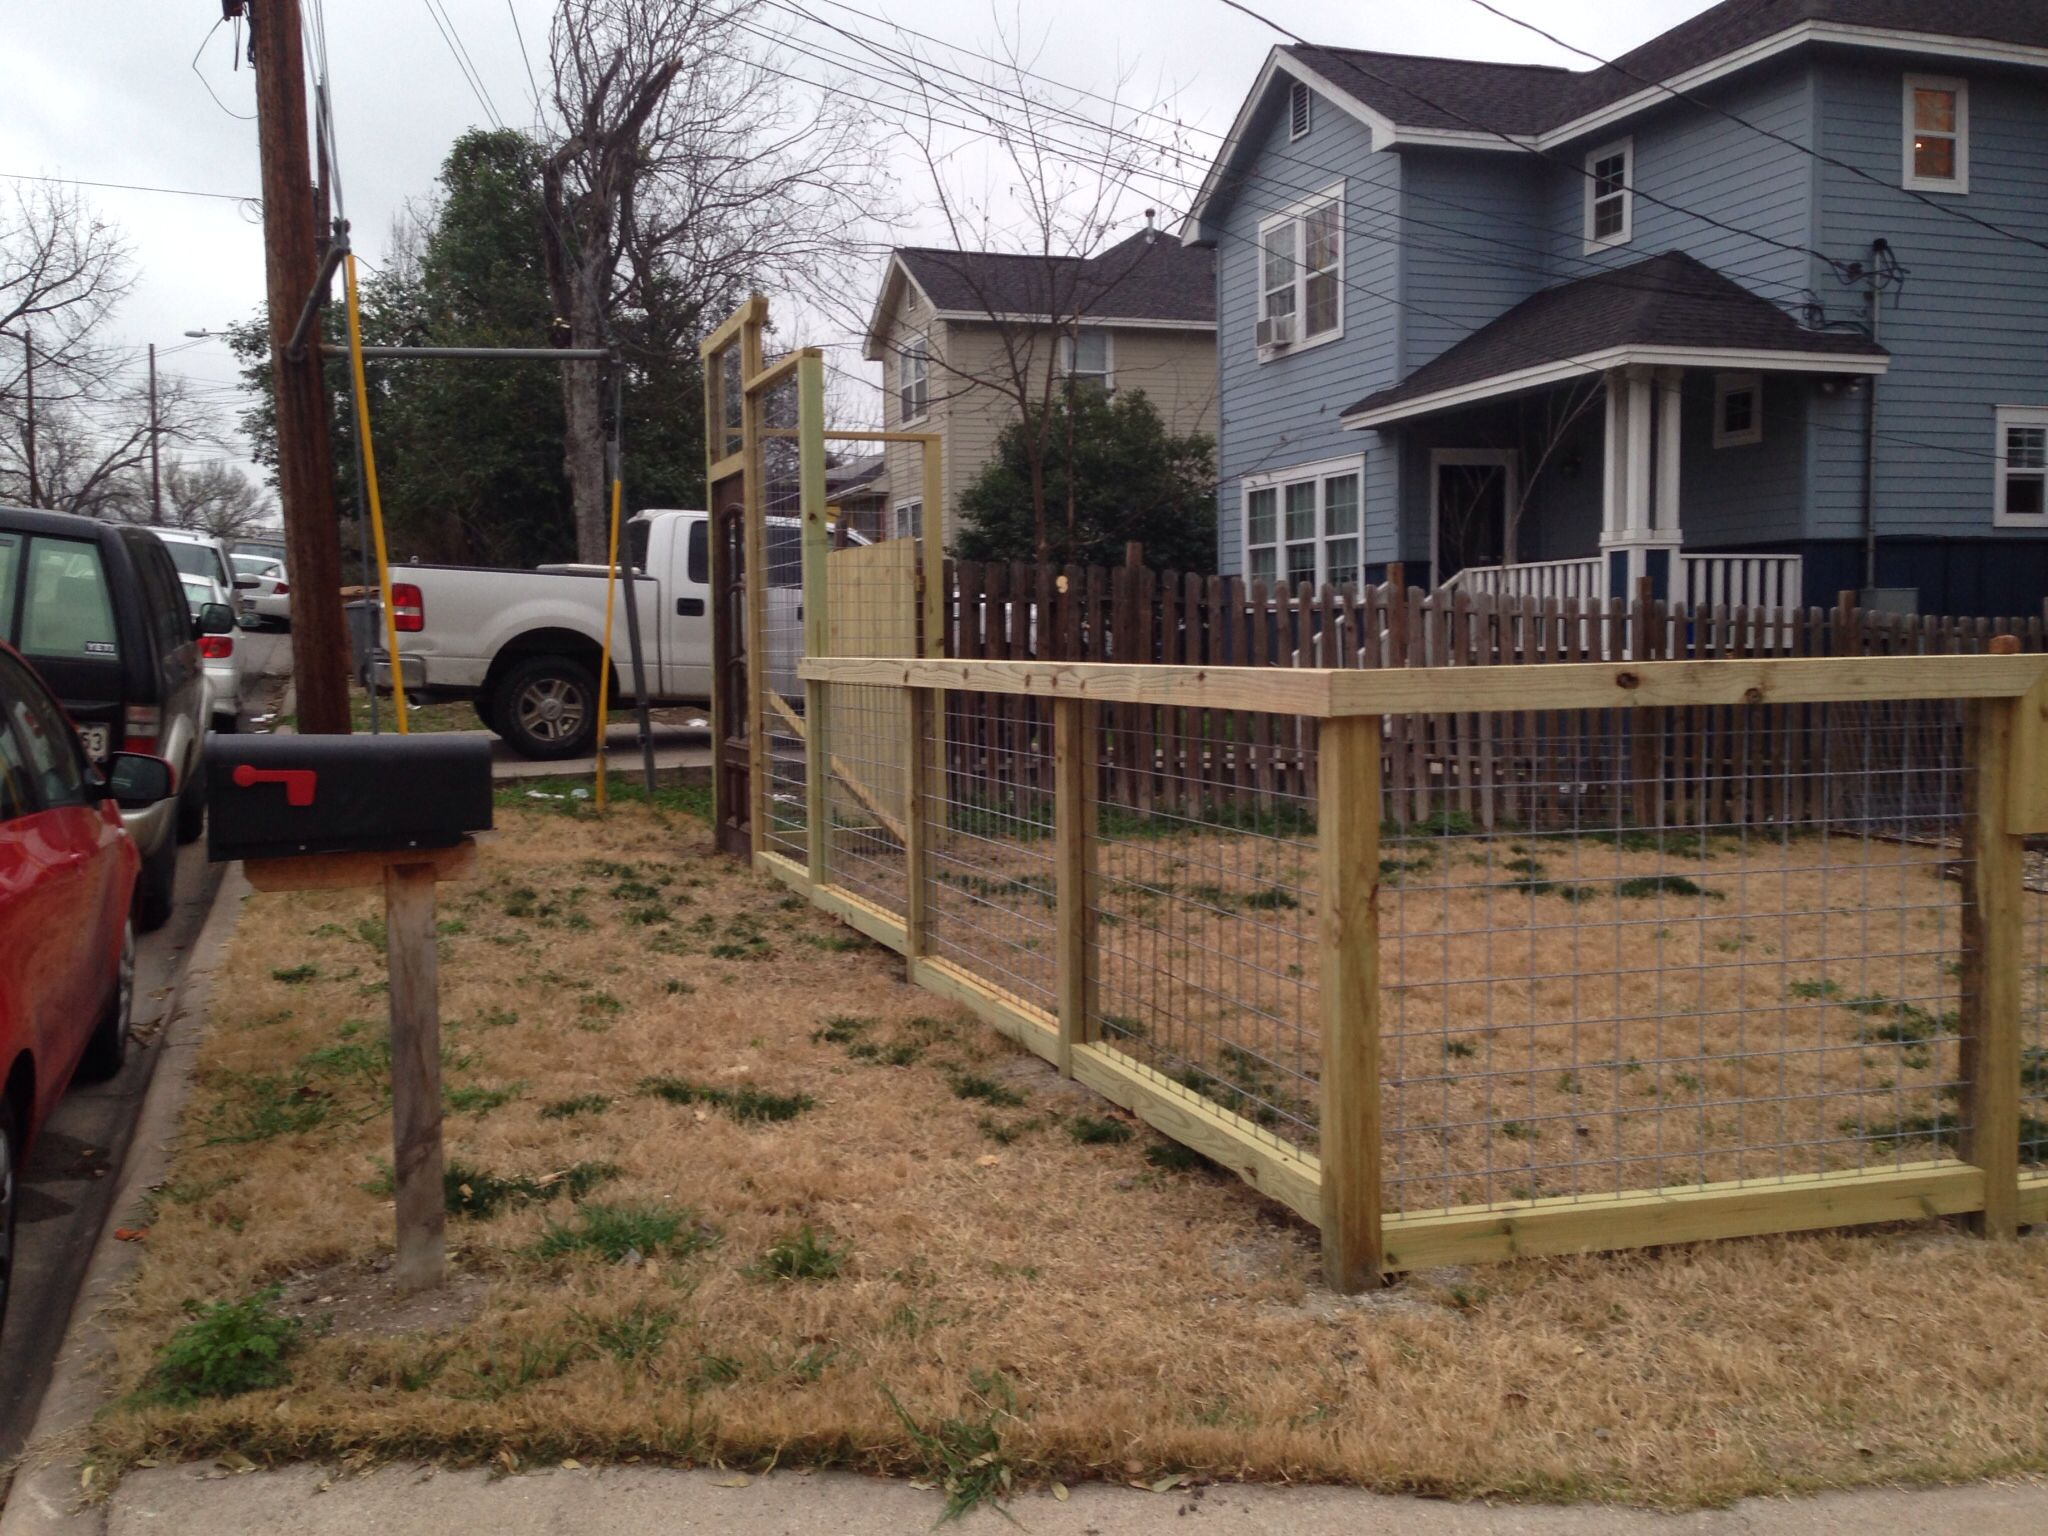 Wire Fence For Yard : Welded wire fence front yard  Neverending Remodeling Project